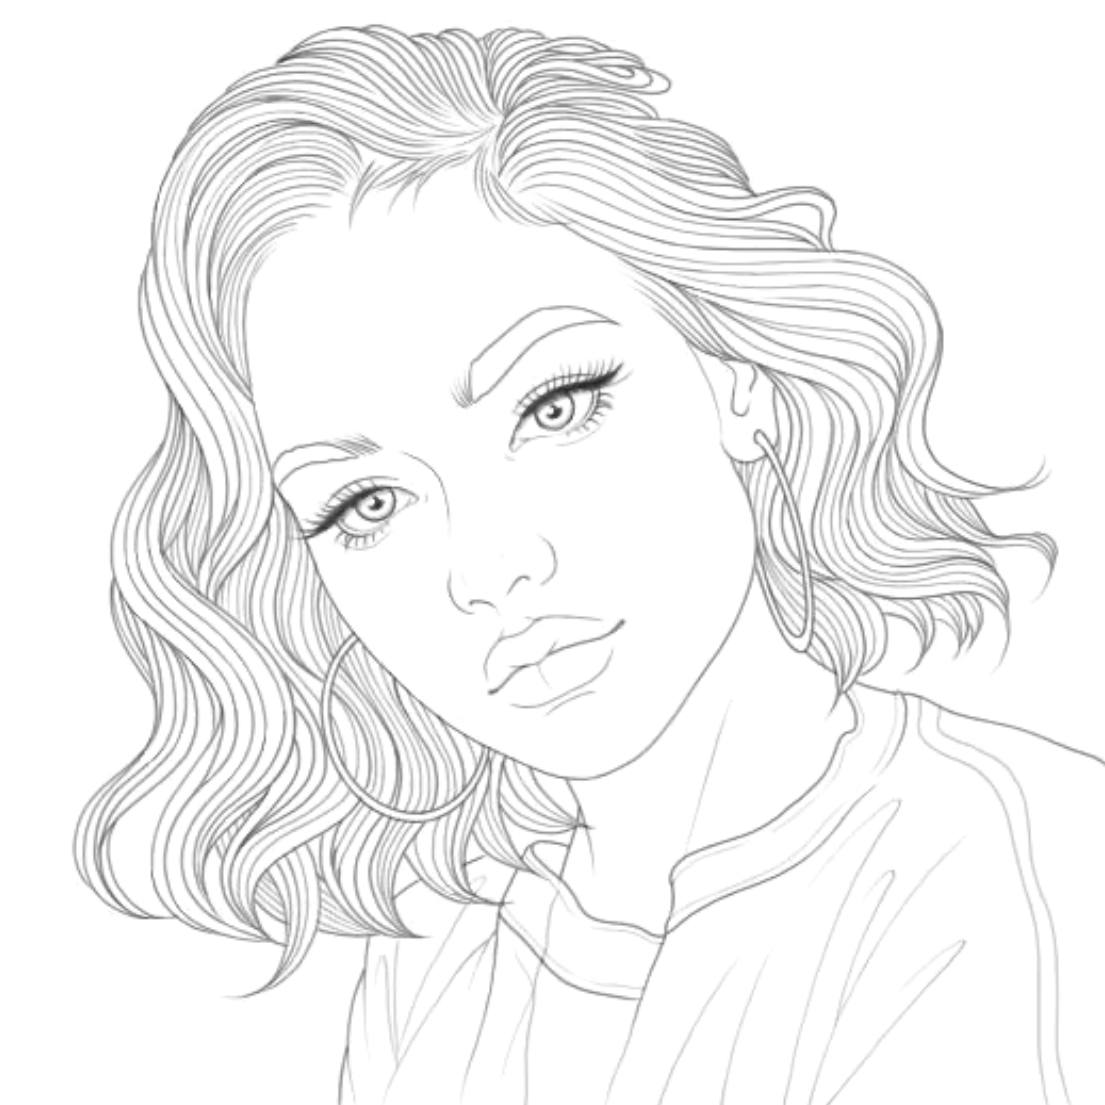 Pin By Rosi Salerno On Coloring Book With Numbers People Coloring Pages Outline Art Tumblr Coloring Pages